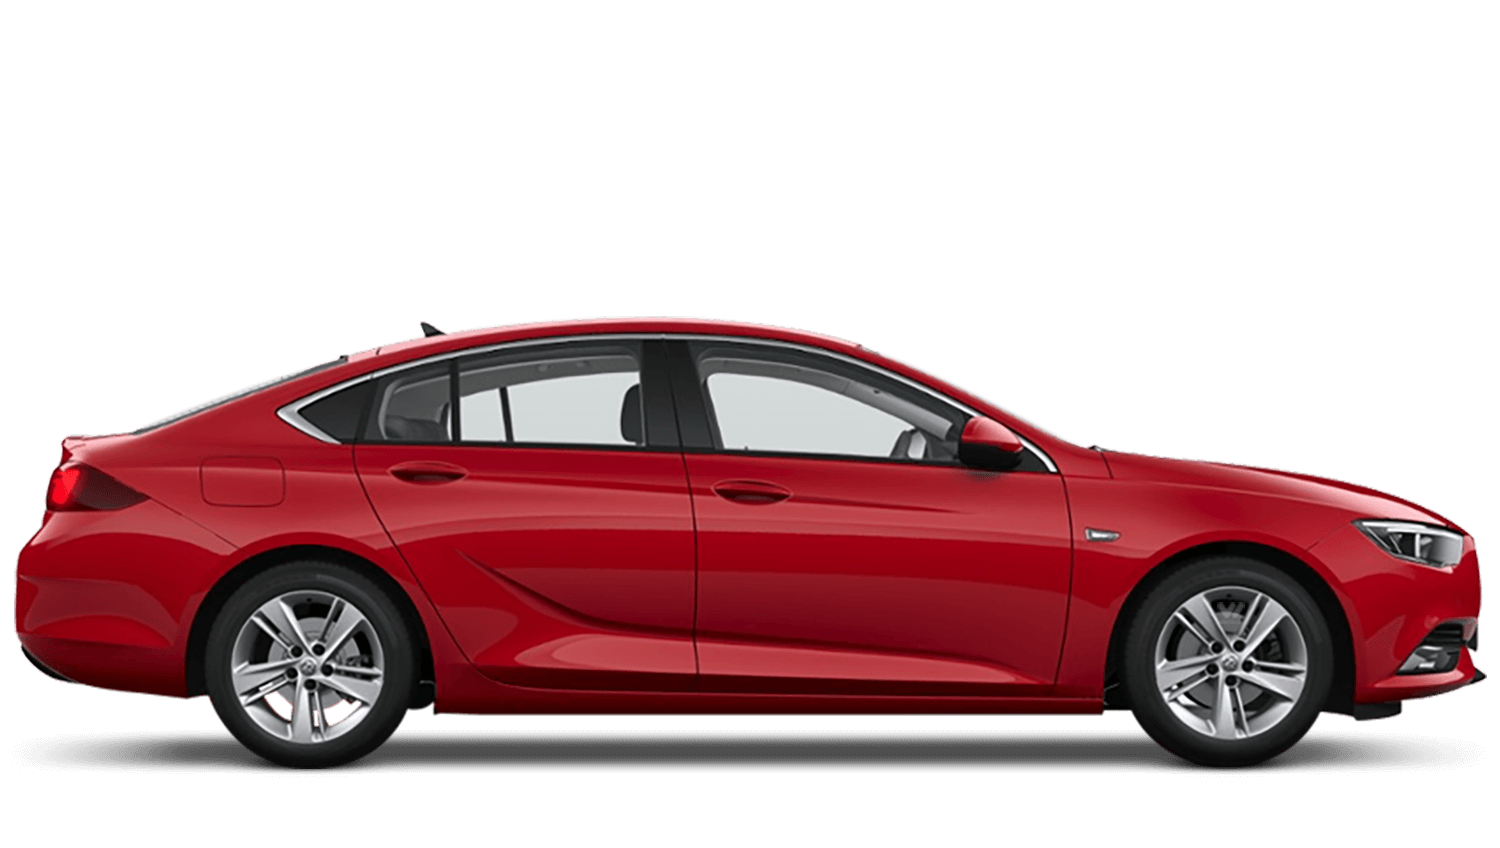 Lava Red (Brilliant) Vauxhall Insignia Grand Sport